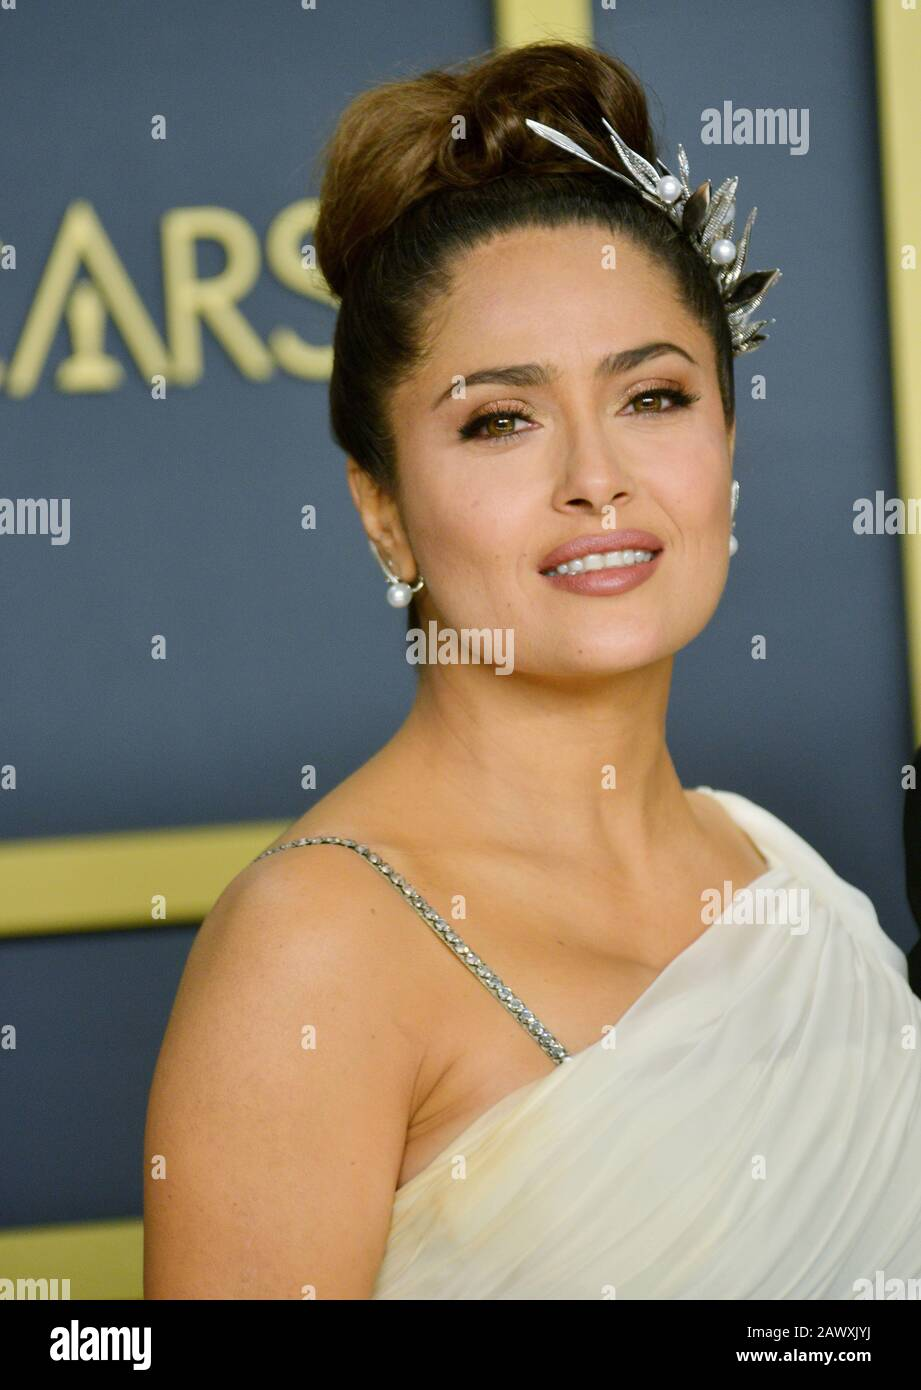 Los Angeles, USA. 9th Feb, 2020. Salma Hayek 139 poses in the press room during the 92nd Annual Academy Awards at Hollywood and Highland on February 09, 2020 in Hollywood, California Credit: Tsuni/USA/Alamy Live News Stock Photo